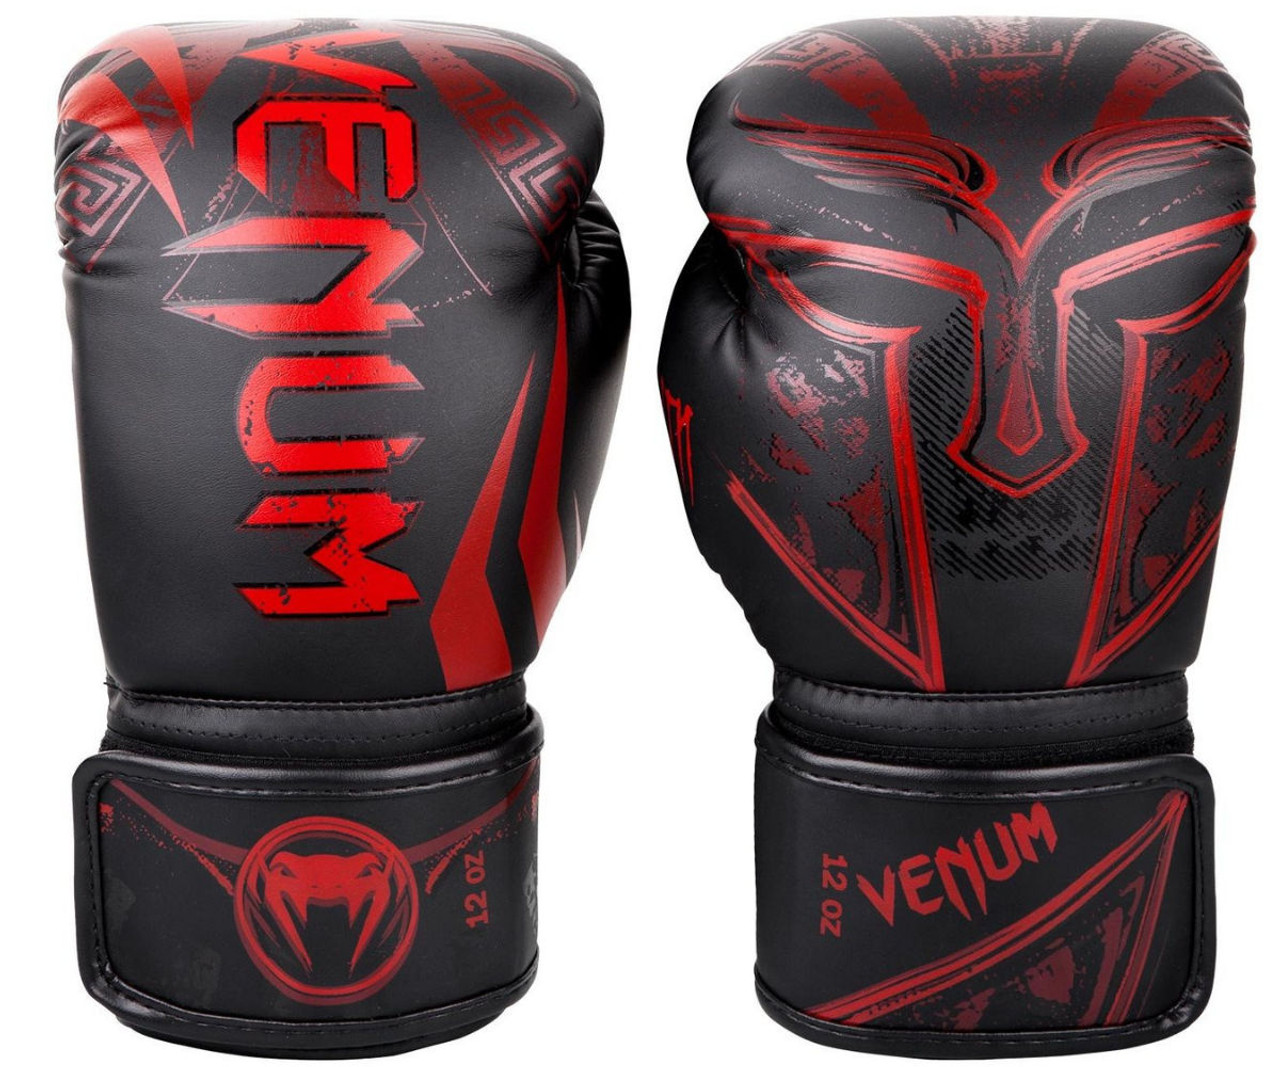 Venum Boxing Gloves Challenger 3.0 Black Red Muay Thai Kickboxing Sparring